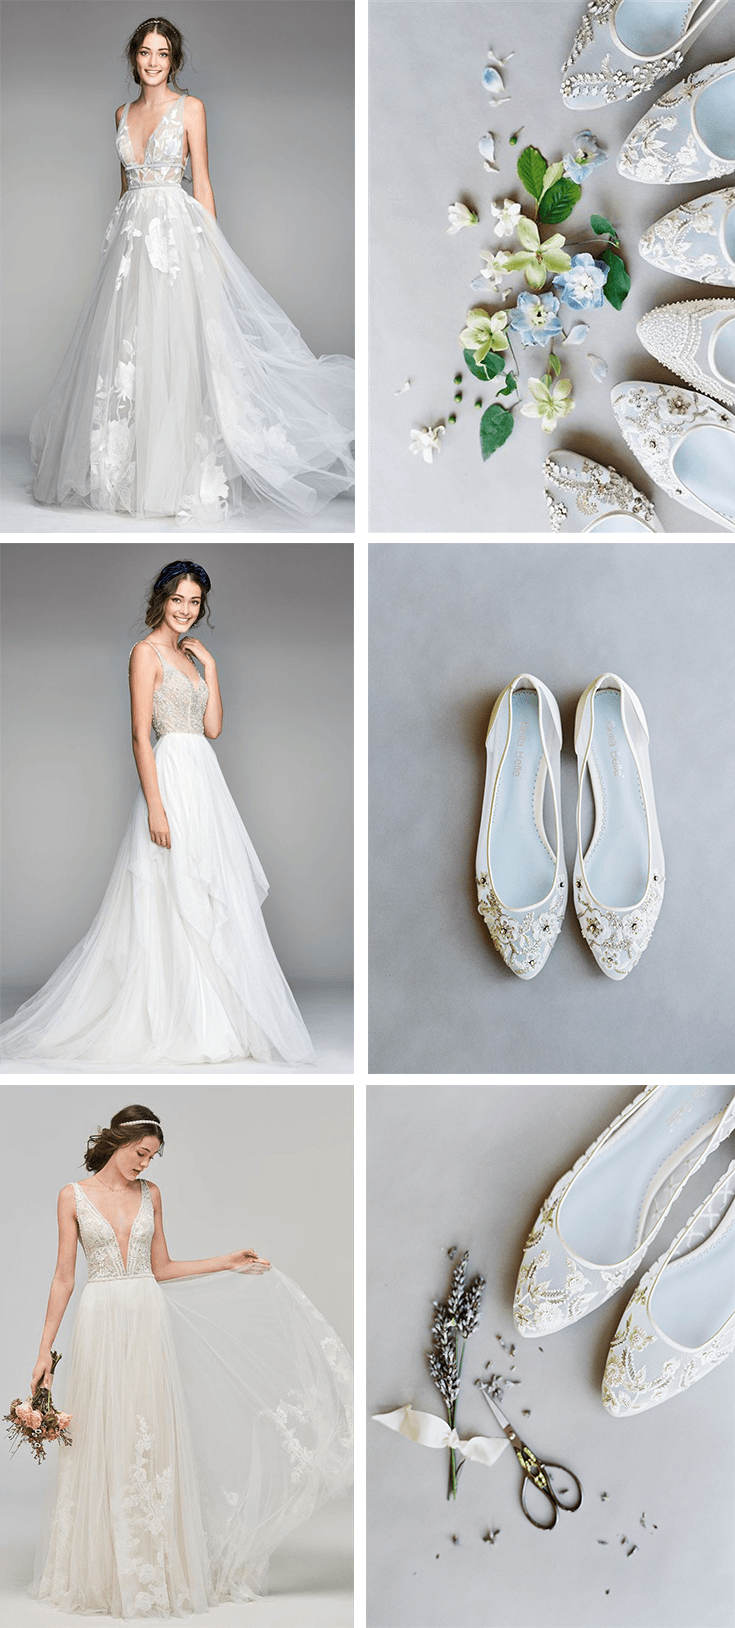 For The Boho Chic Romantic And Feminine Brides Who Want A Little